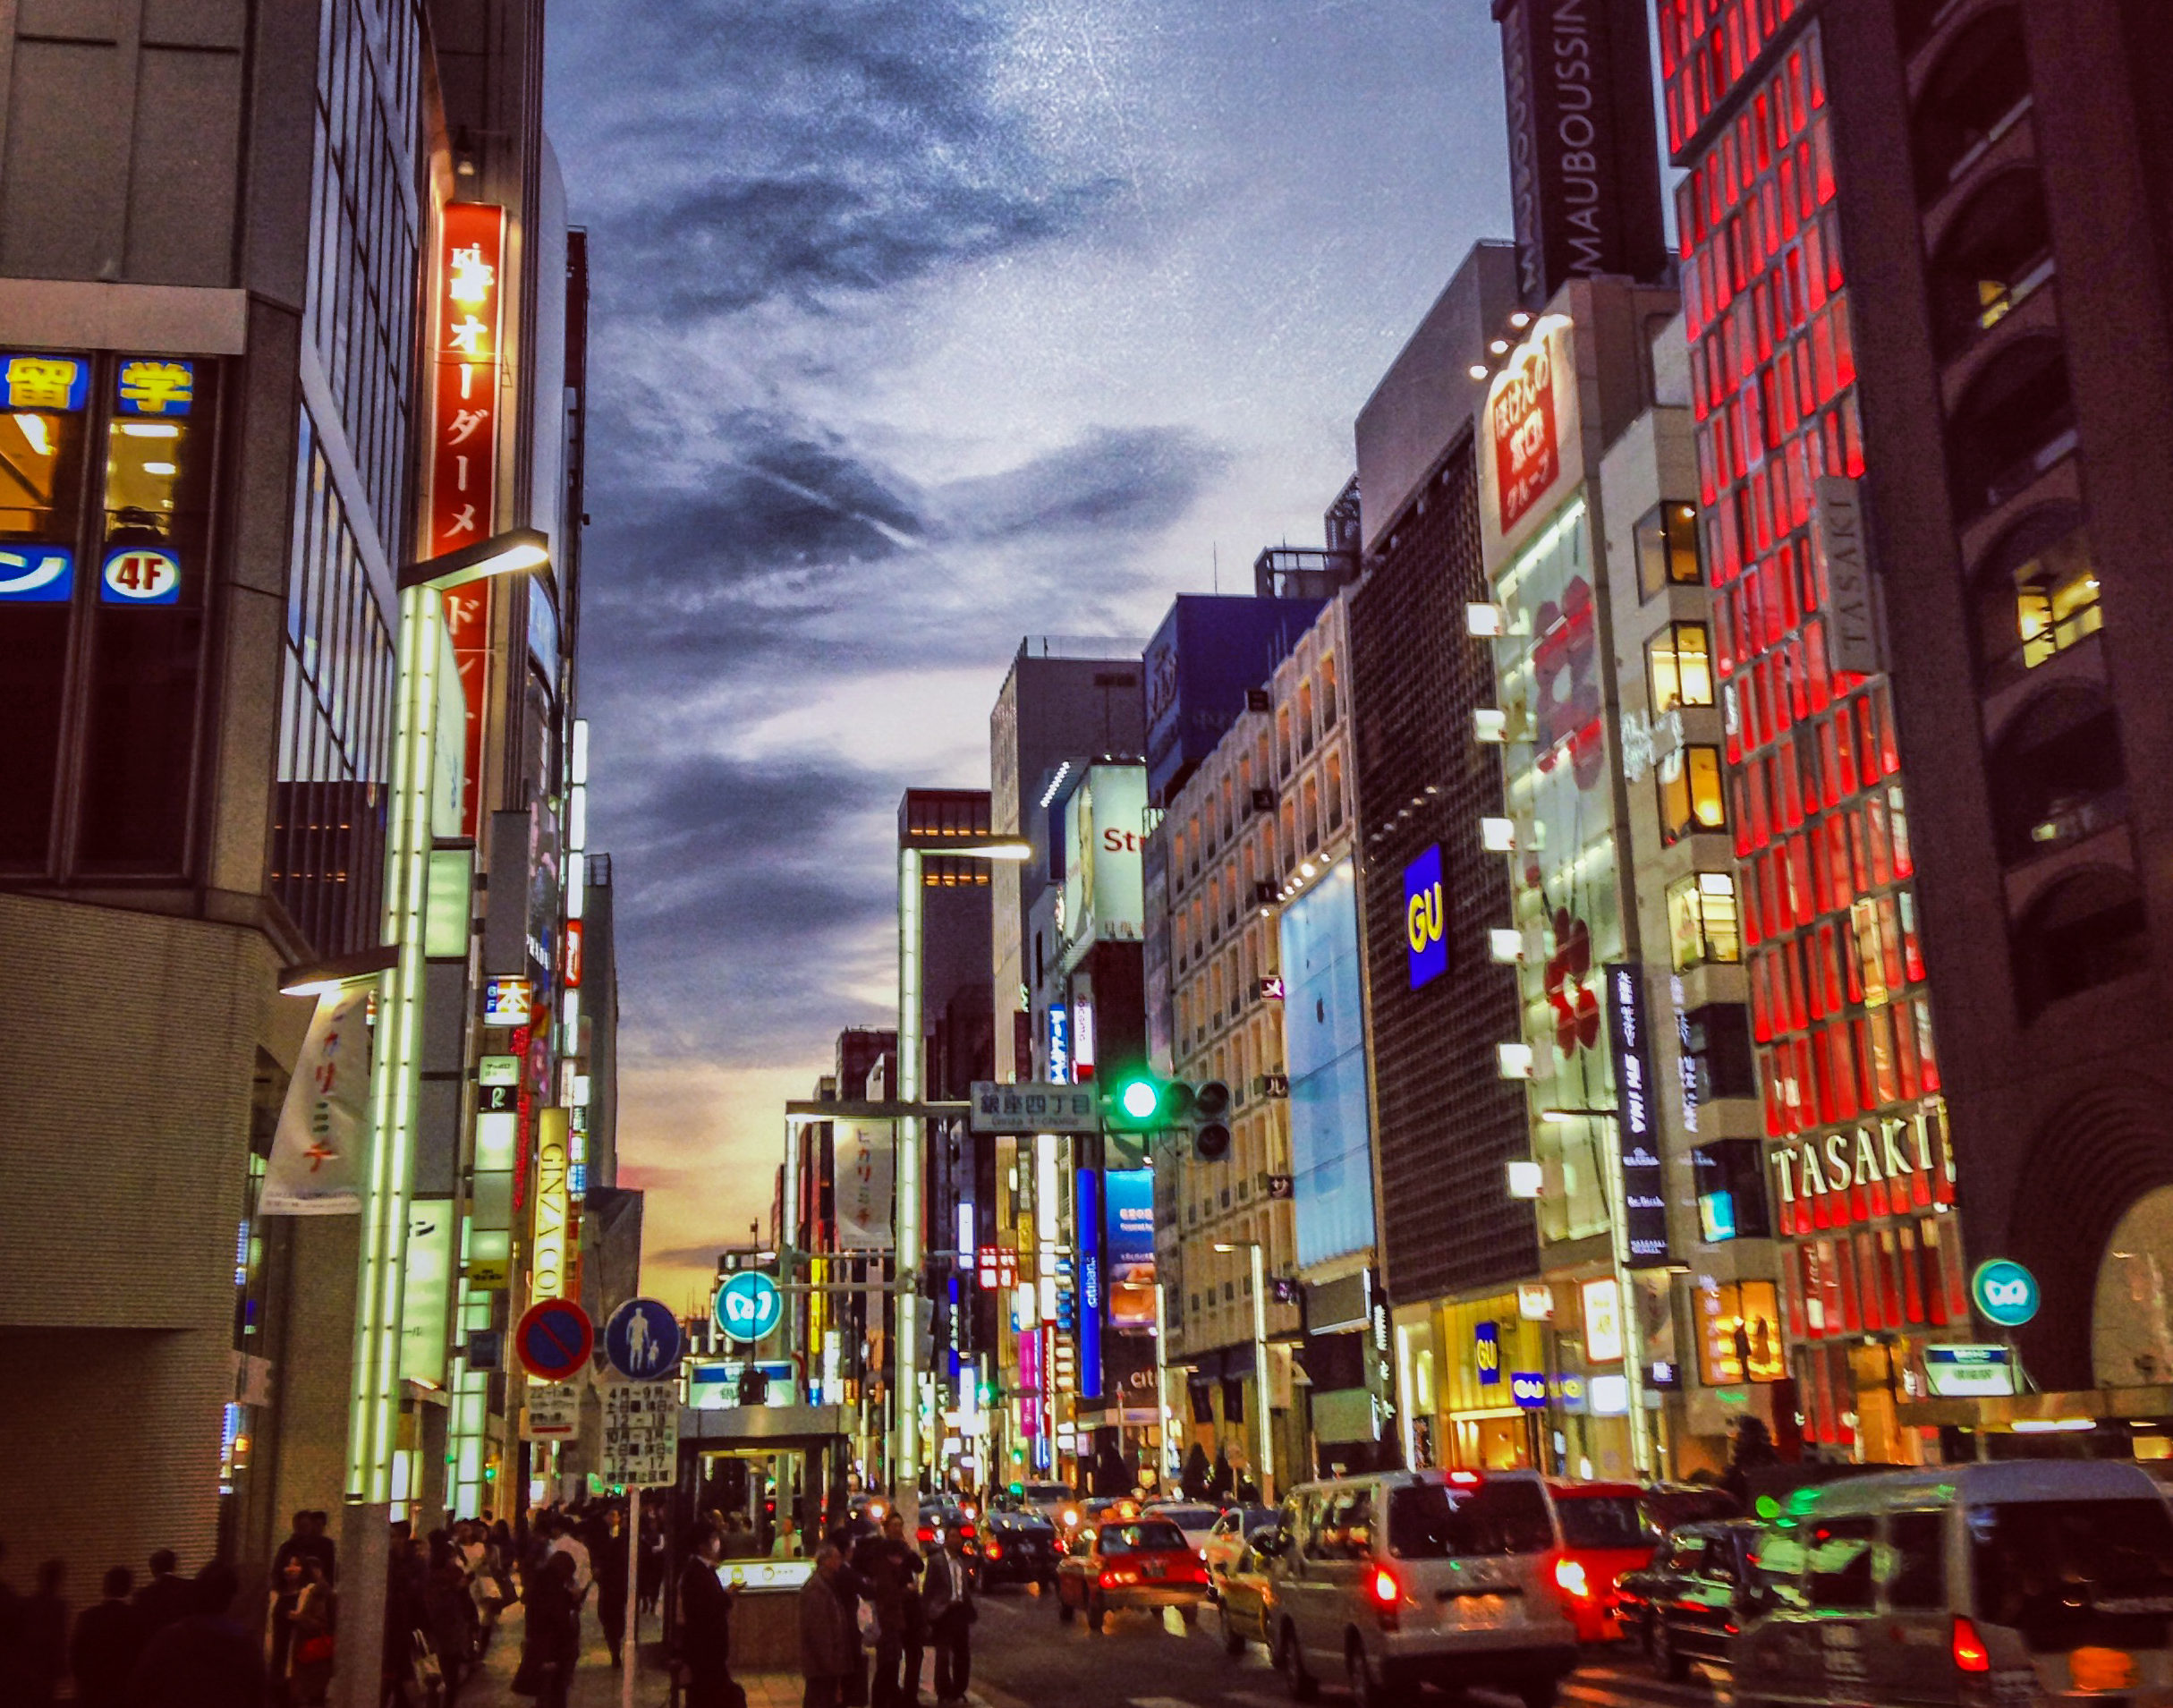 Sunset in Tokyo's Ginza district.